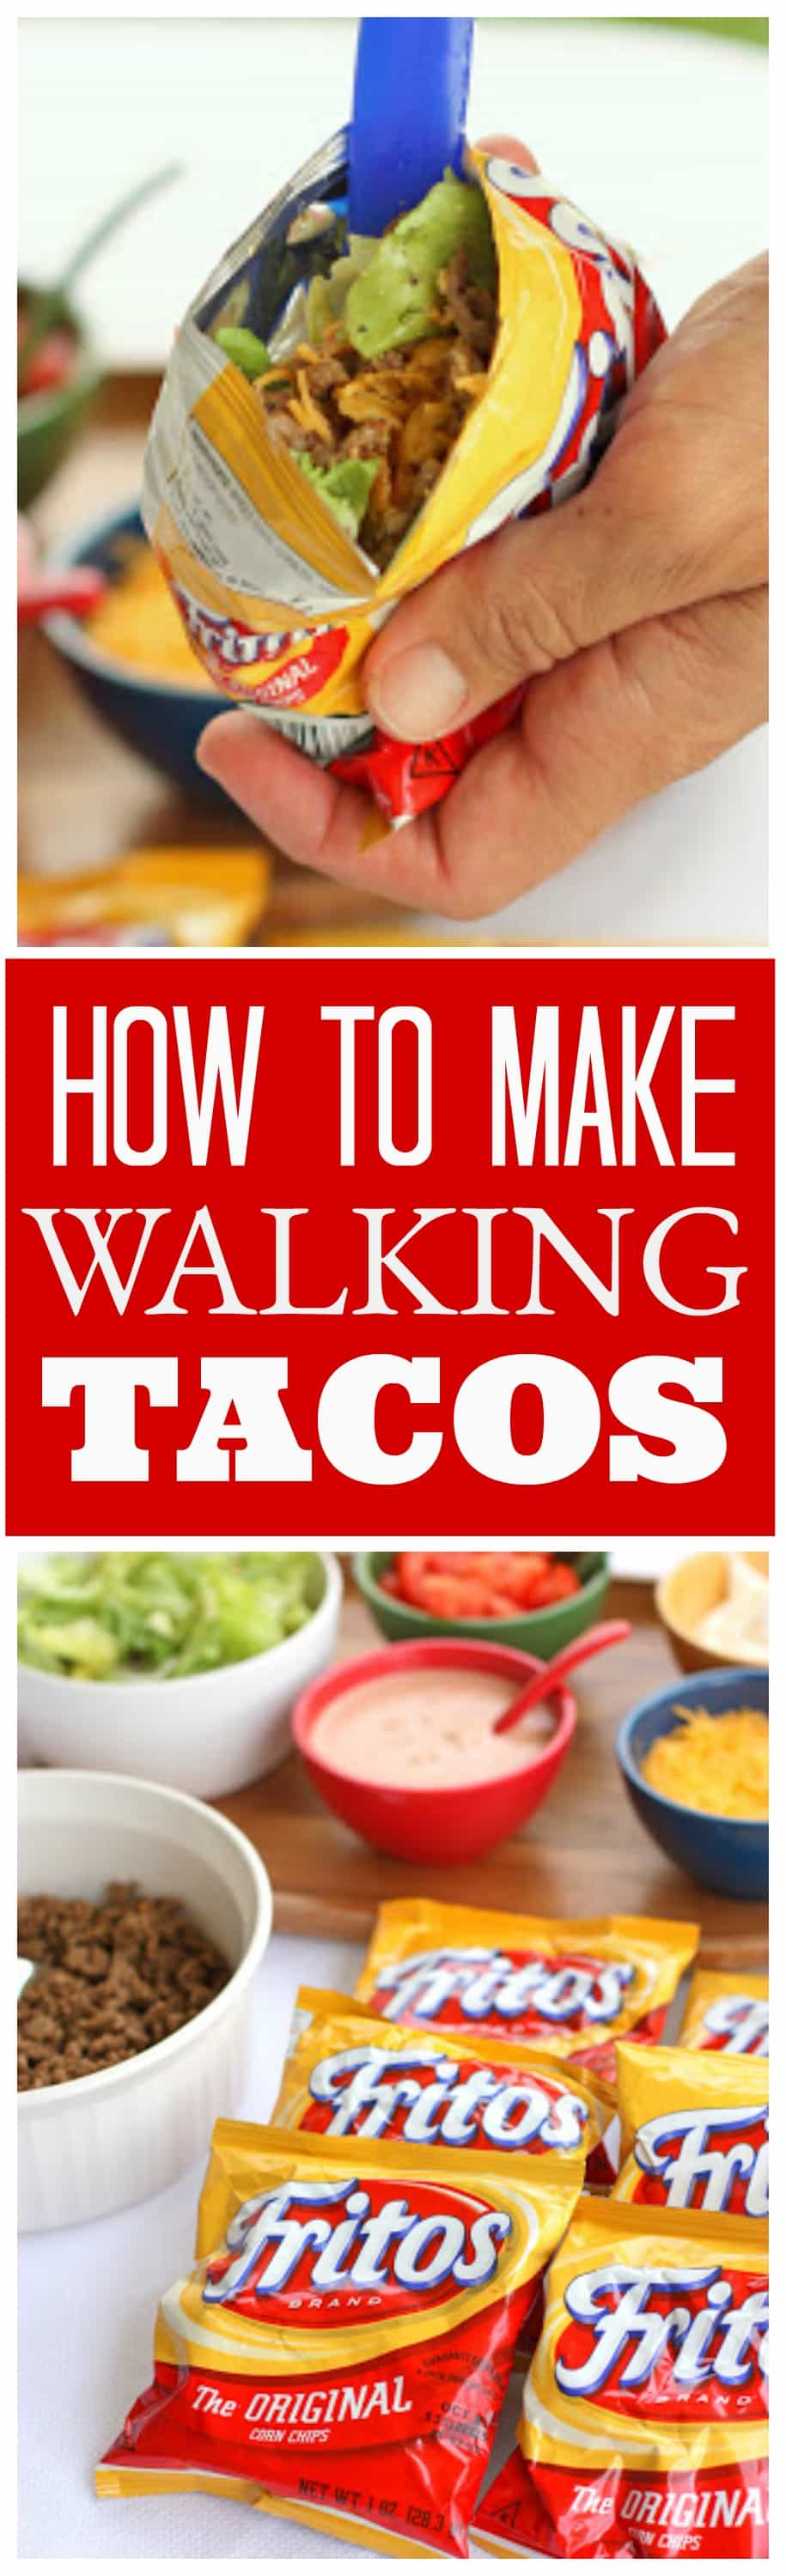 These Walking Tacos are tacos made right in the bag. Great for parties and potlucks!